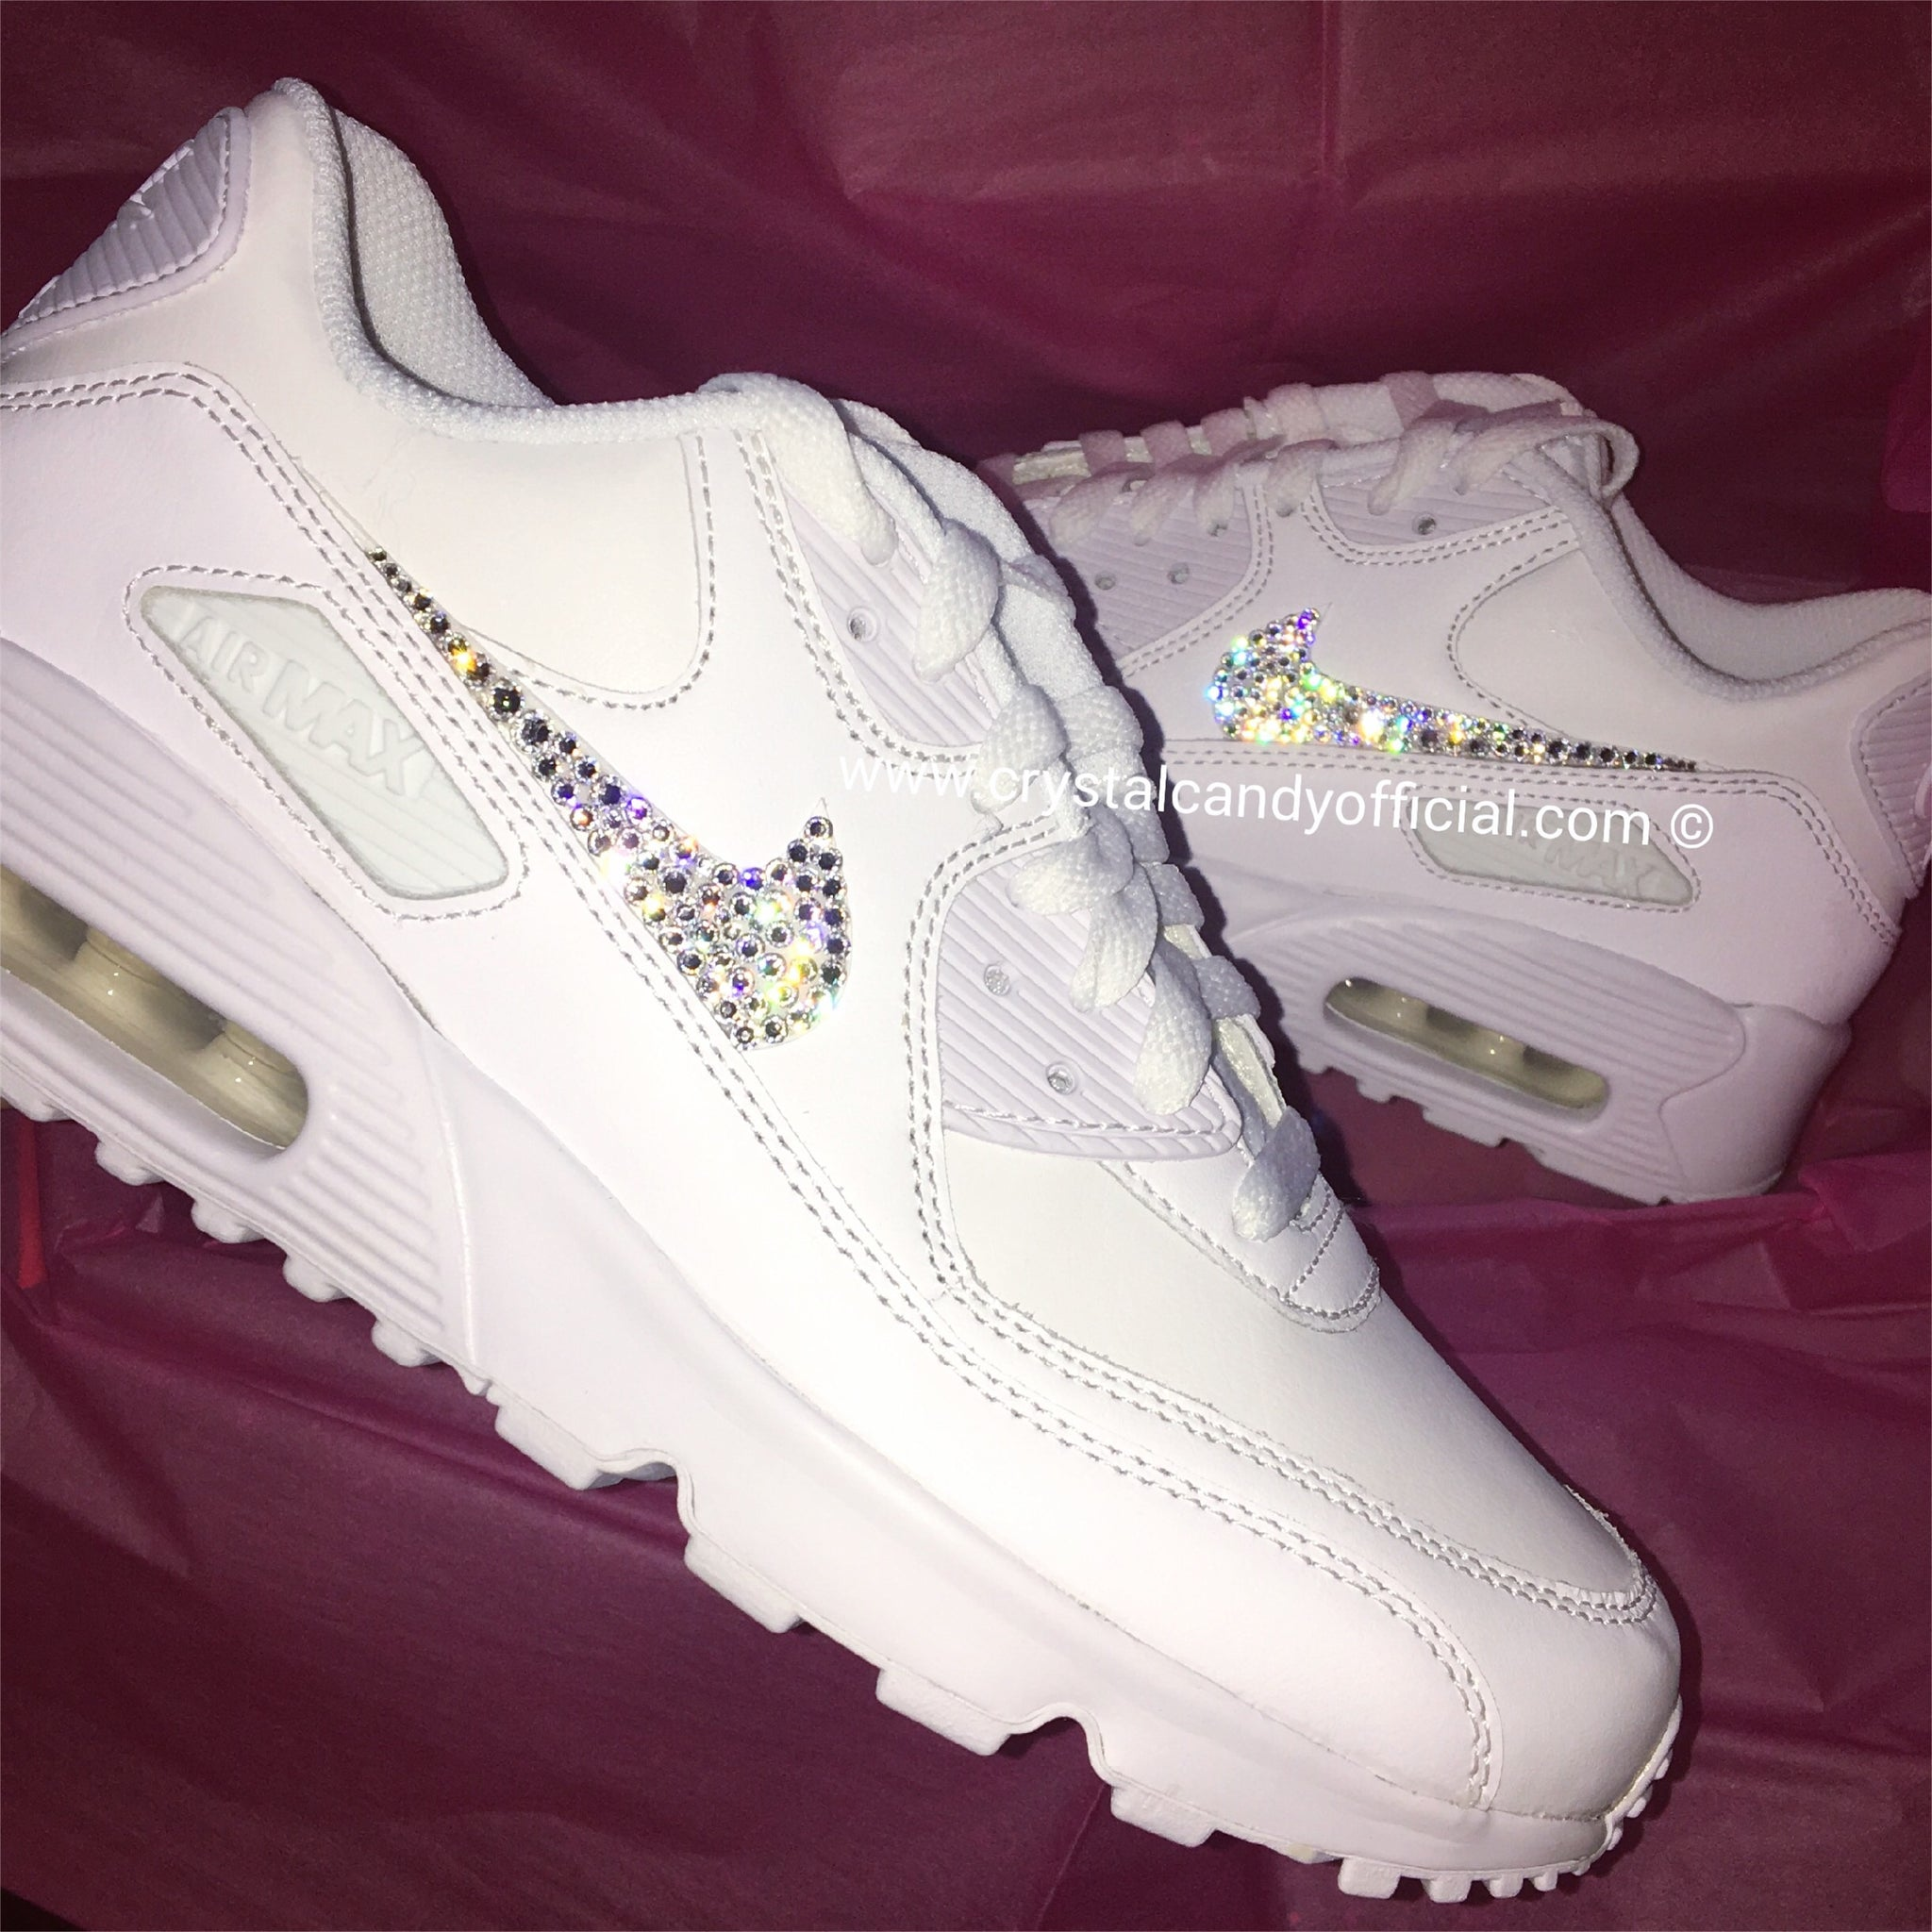 b92d94f97360d Crystal Nike Air Max 90's (Ticks Only) - Crystal Candy Limited